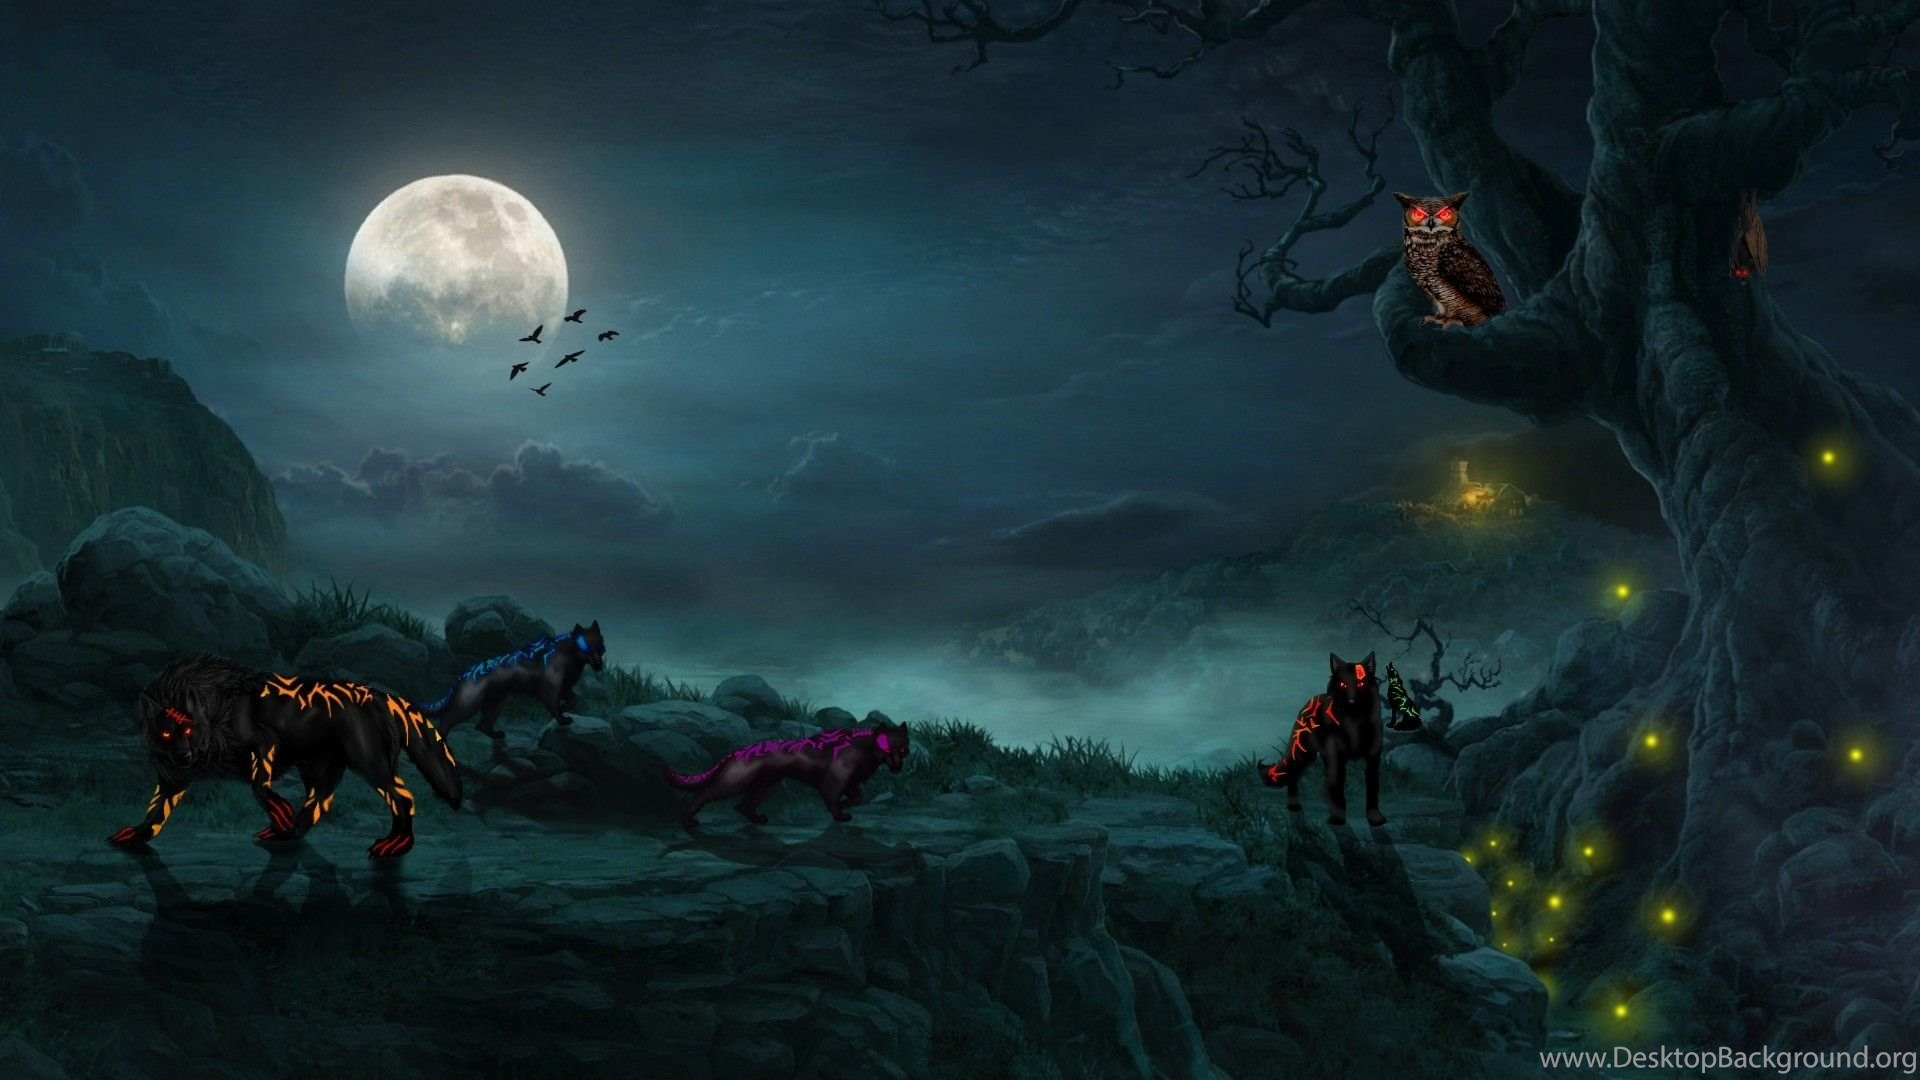 Other Wolf Backgrounds Full Moon Night Dark Mystical Mist Phone Desktop Background